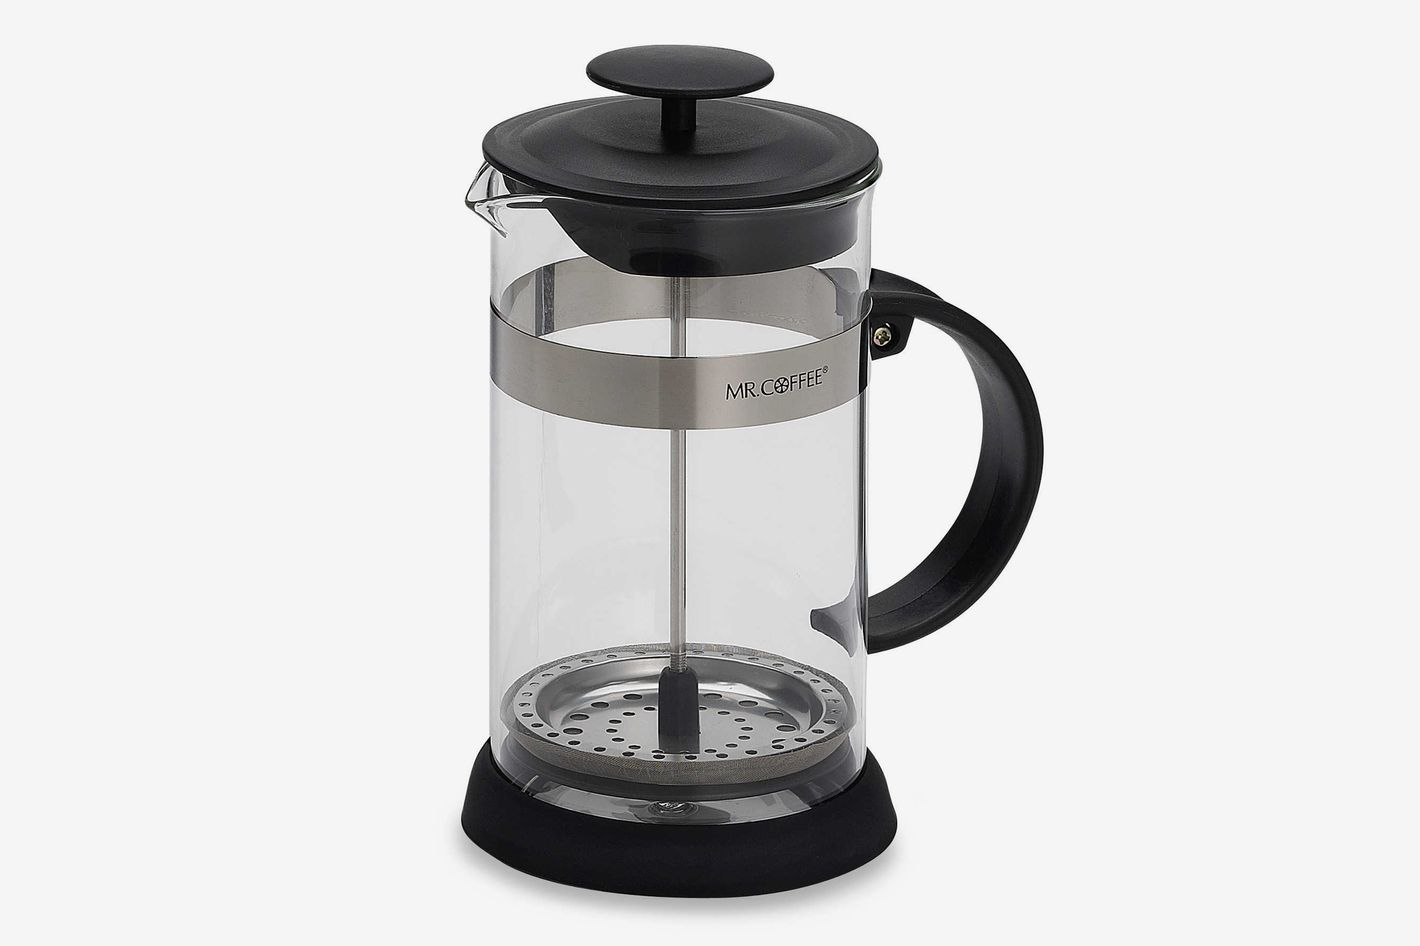 Mr. Coffee 4-Cup Coffee Press in Black